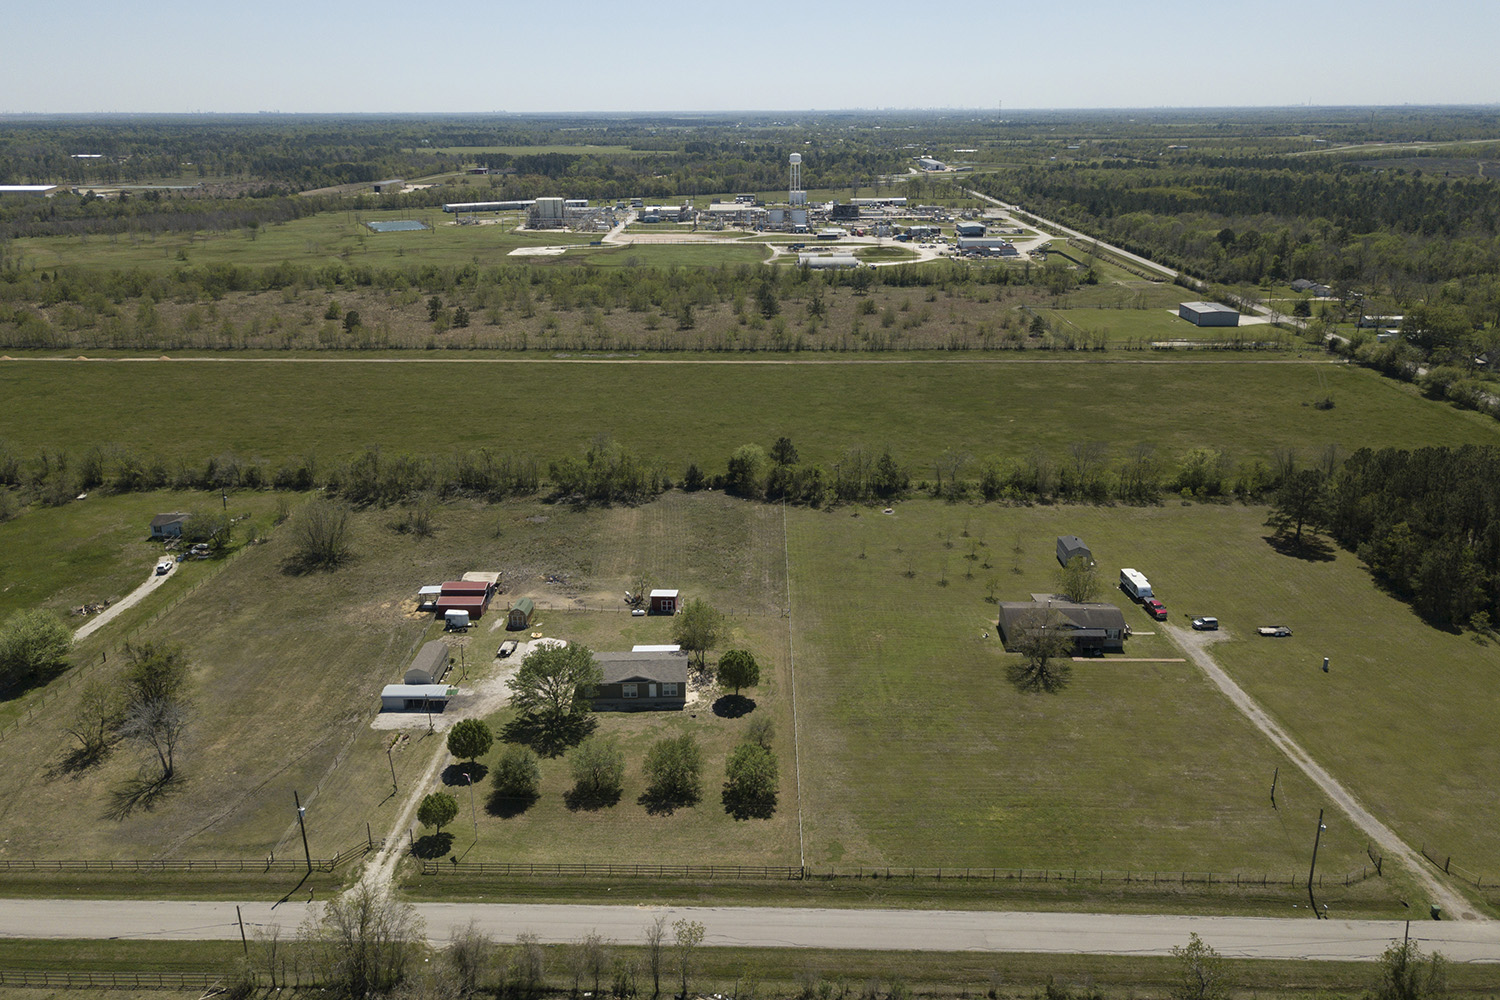 Homes in view of the Arkema chemical plant in Crosby, Texas.